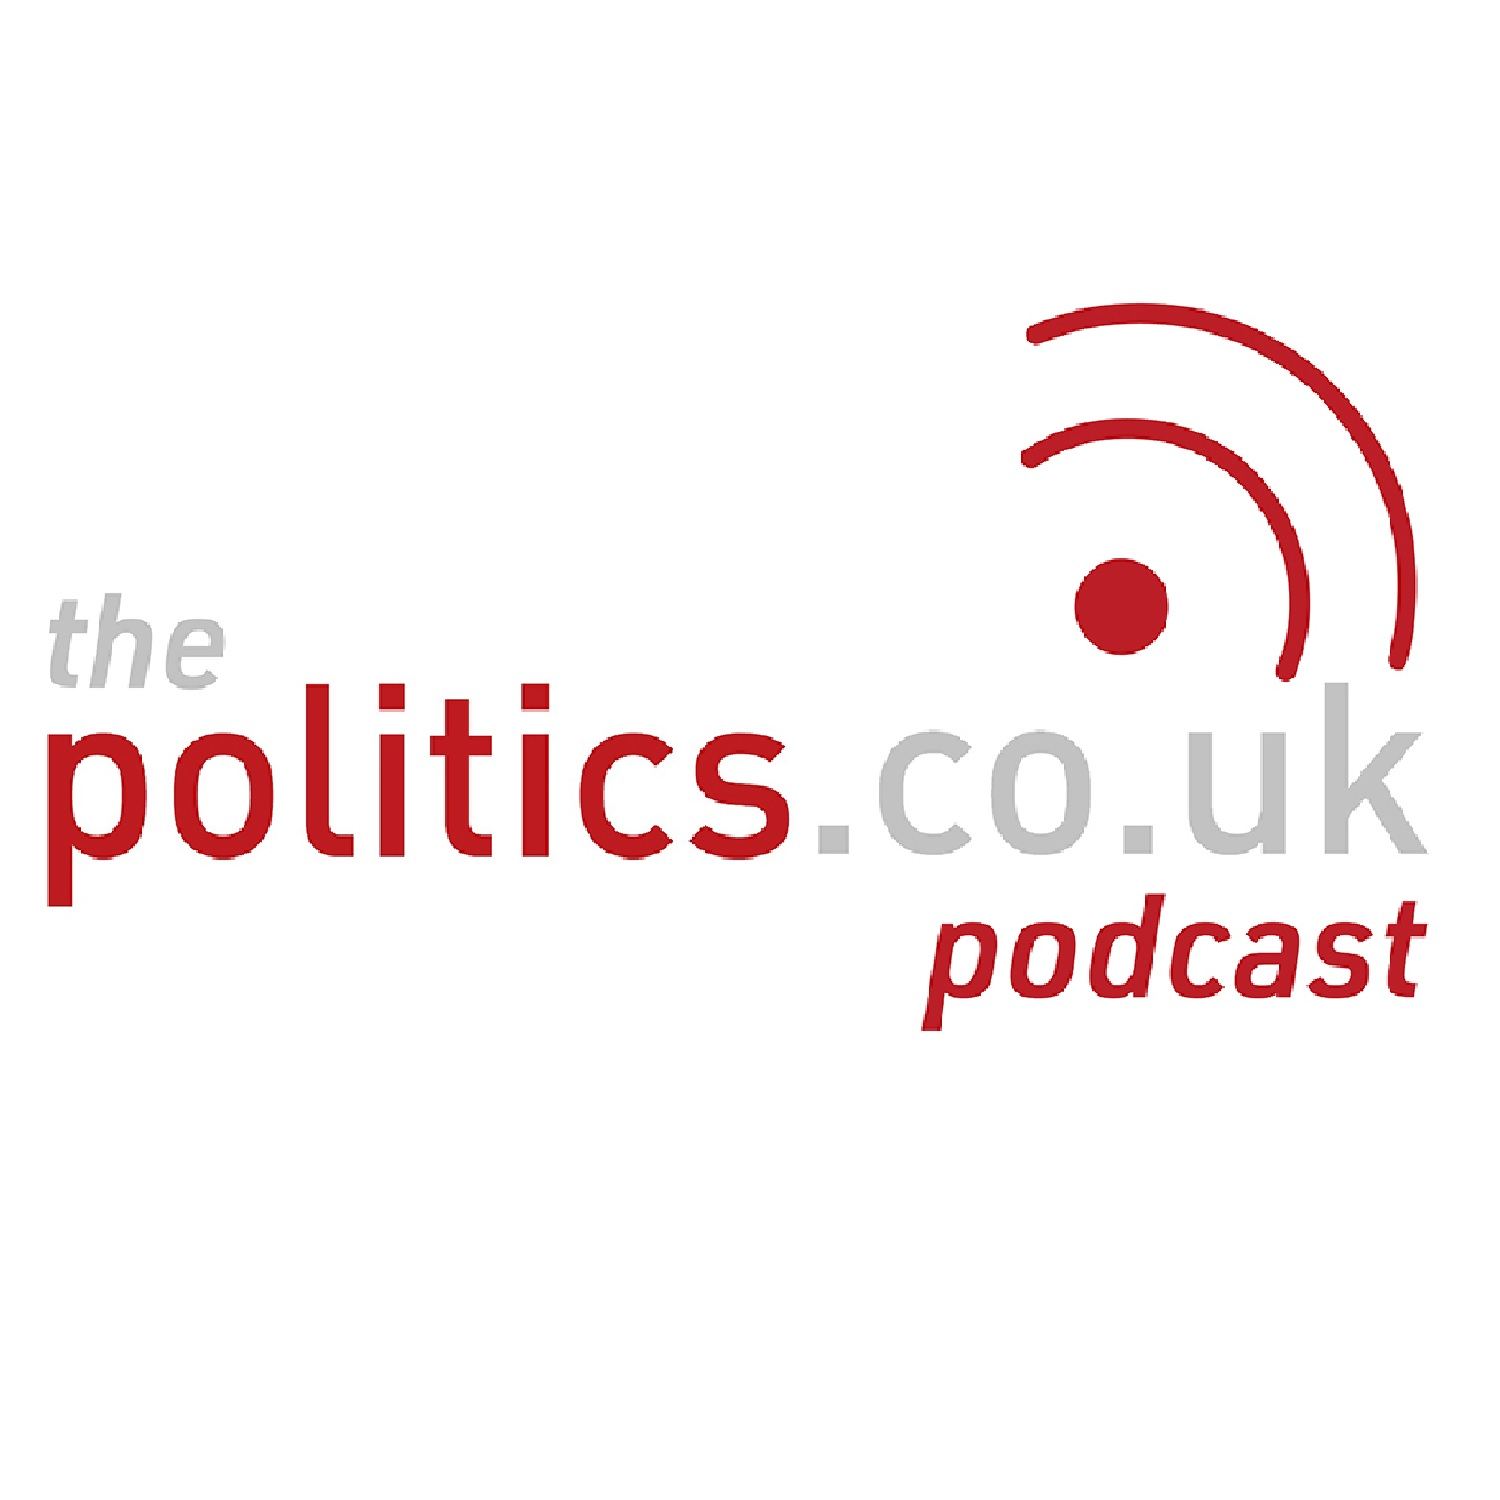 The Politics.co.uk Podcast - the Five Star Movement